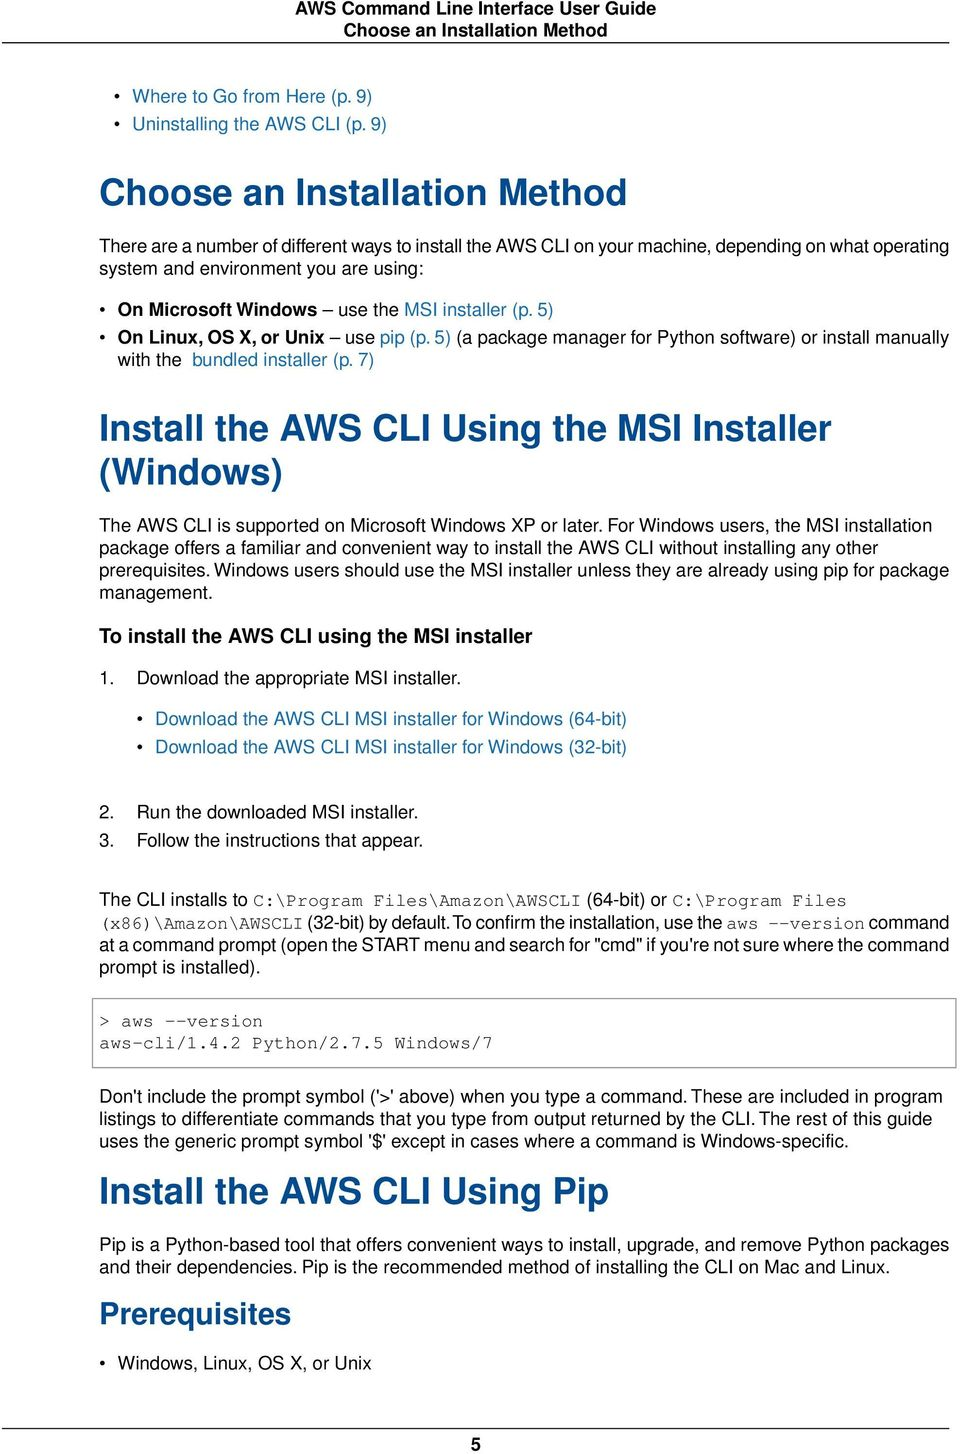 AWS Command Line Interface  User Guide - PDF